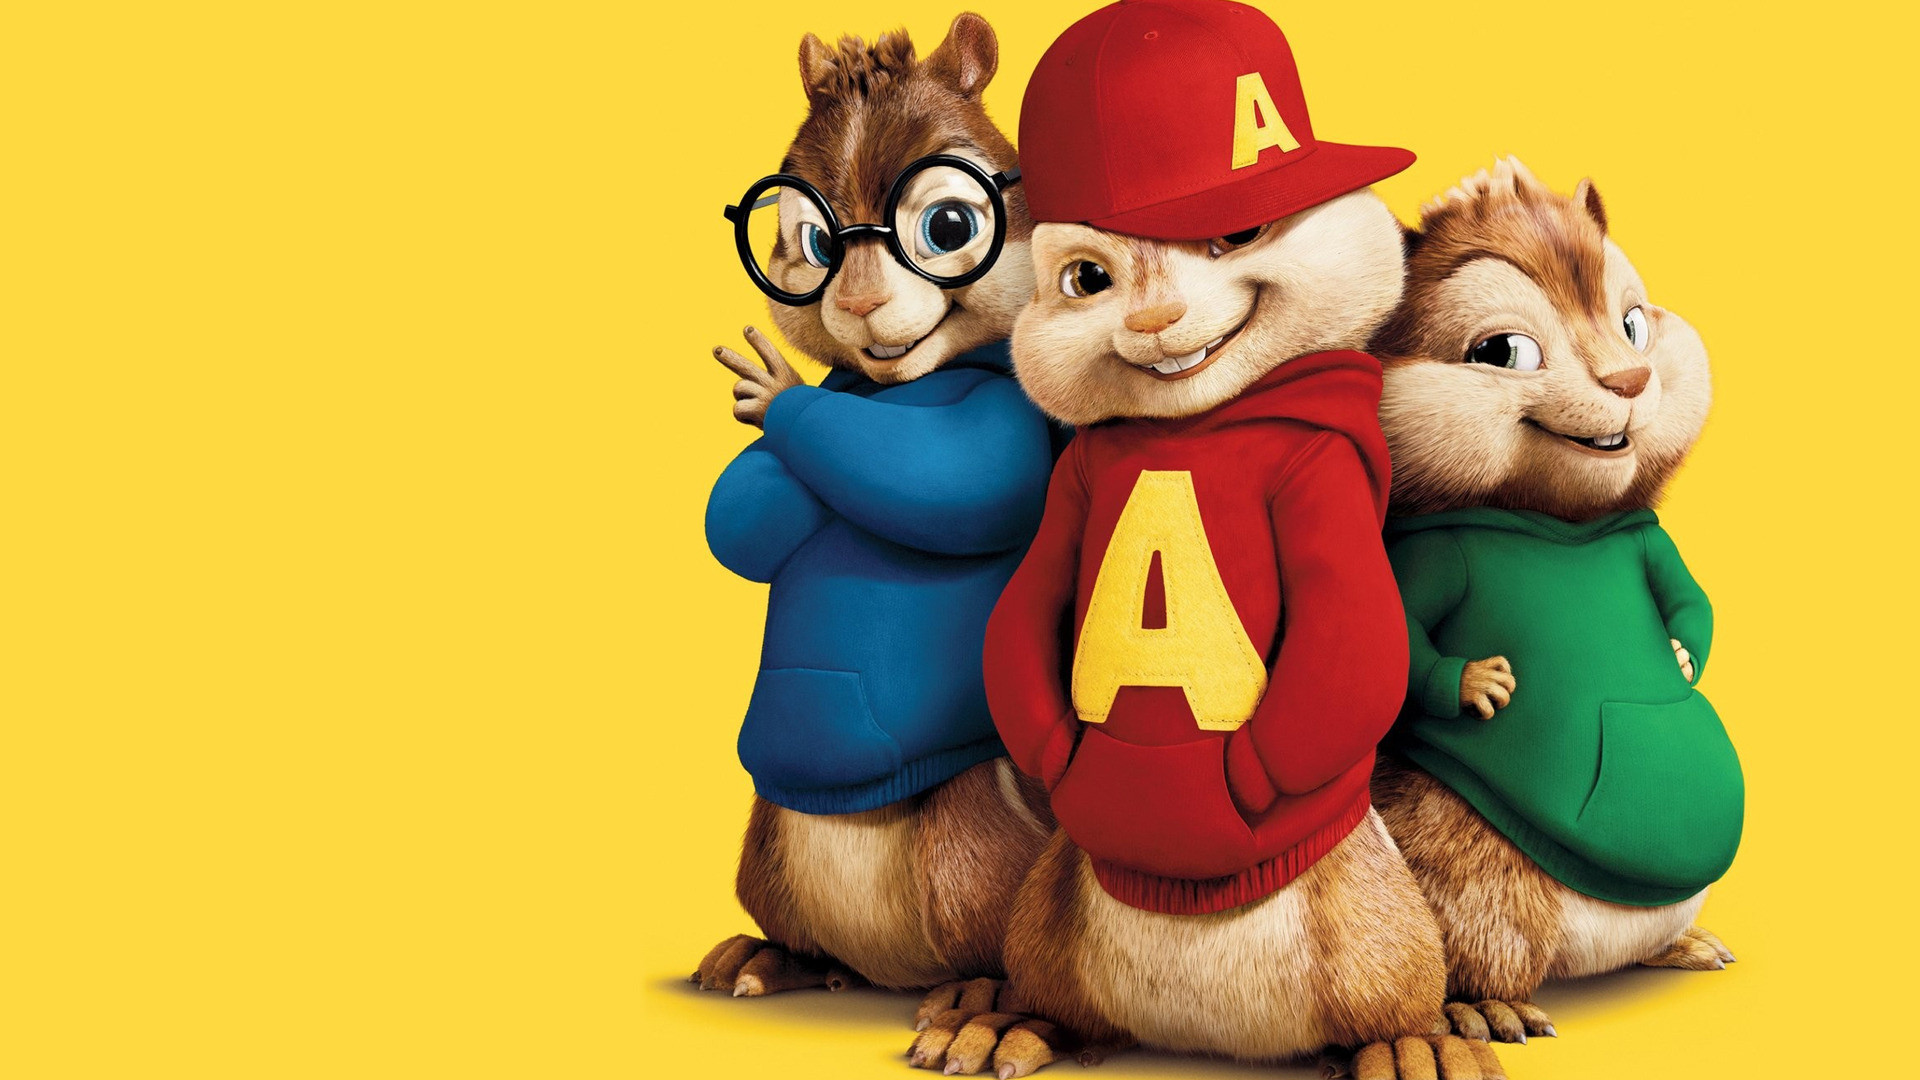 High Resolution Wallpaper | Alvin And The Chipmunks 1920x1080 px